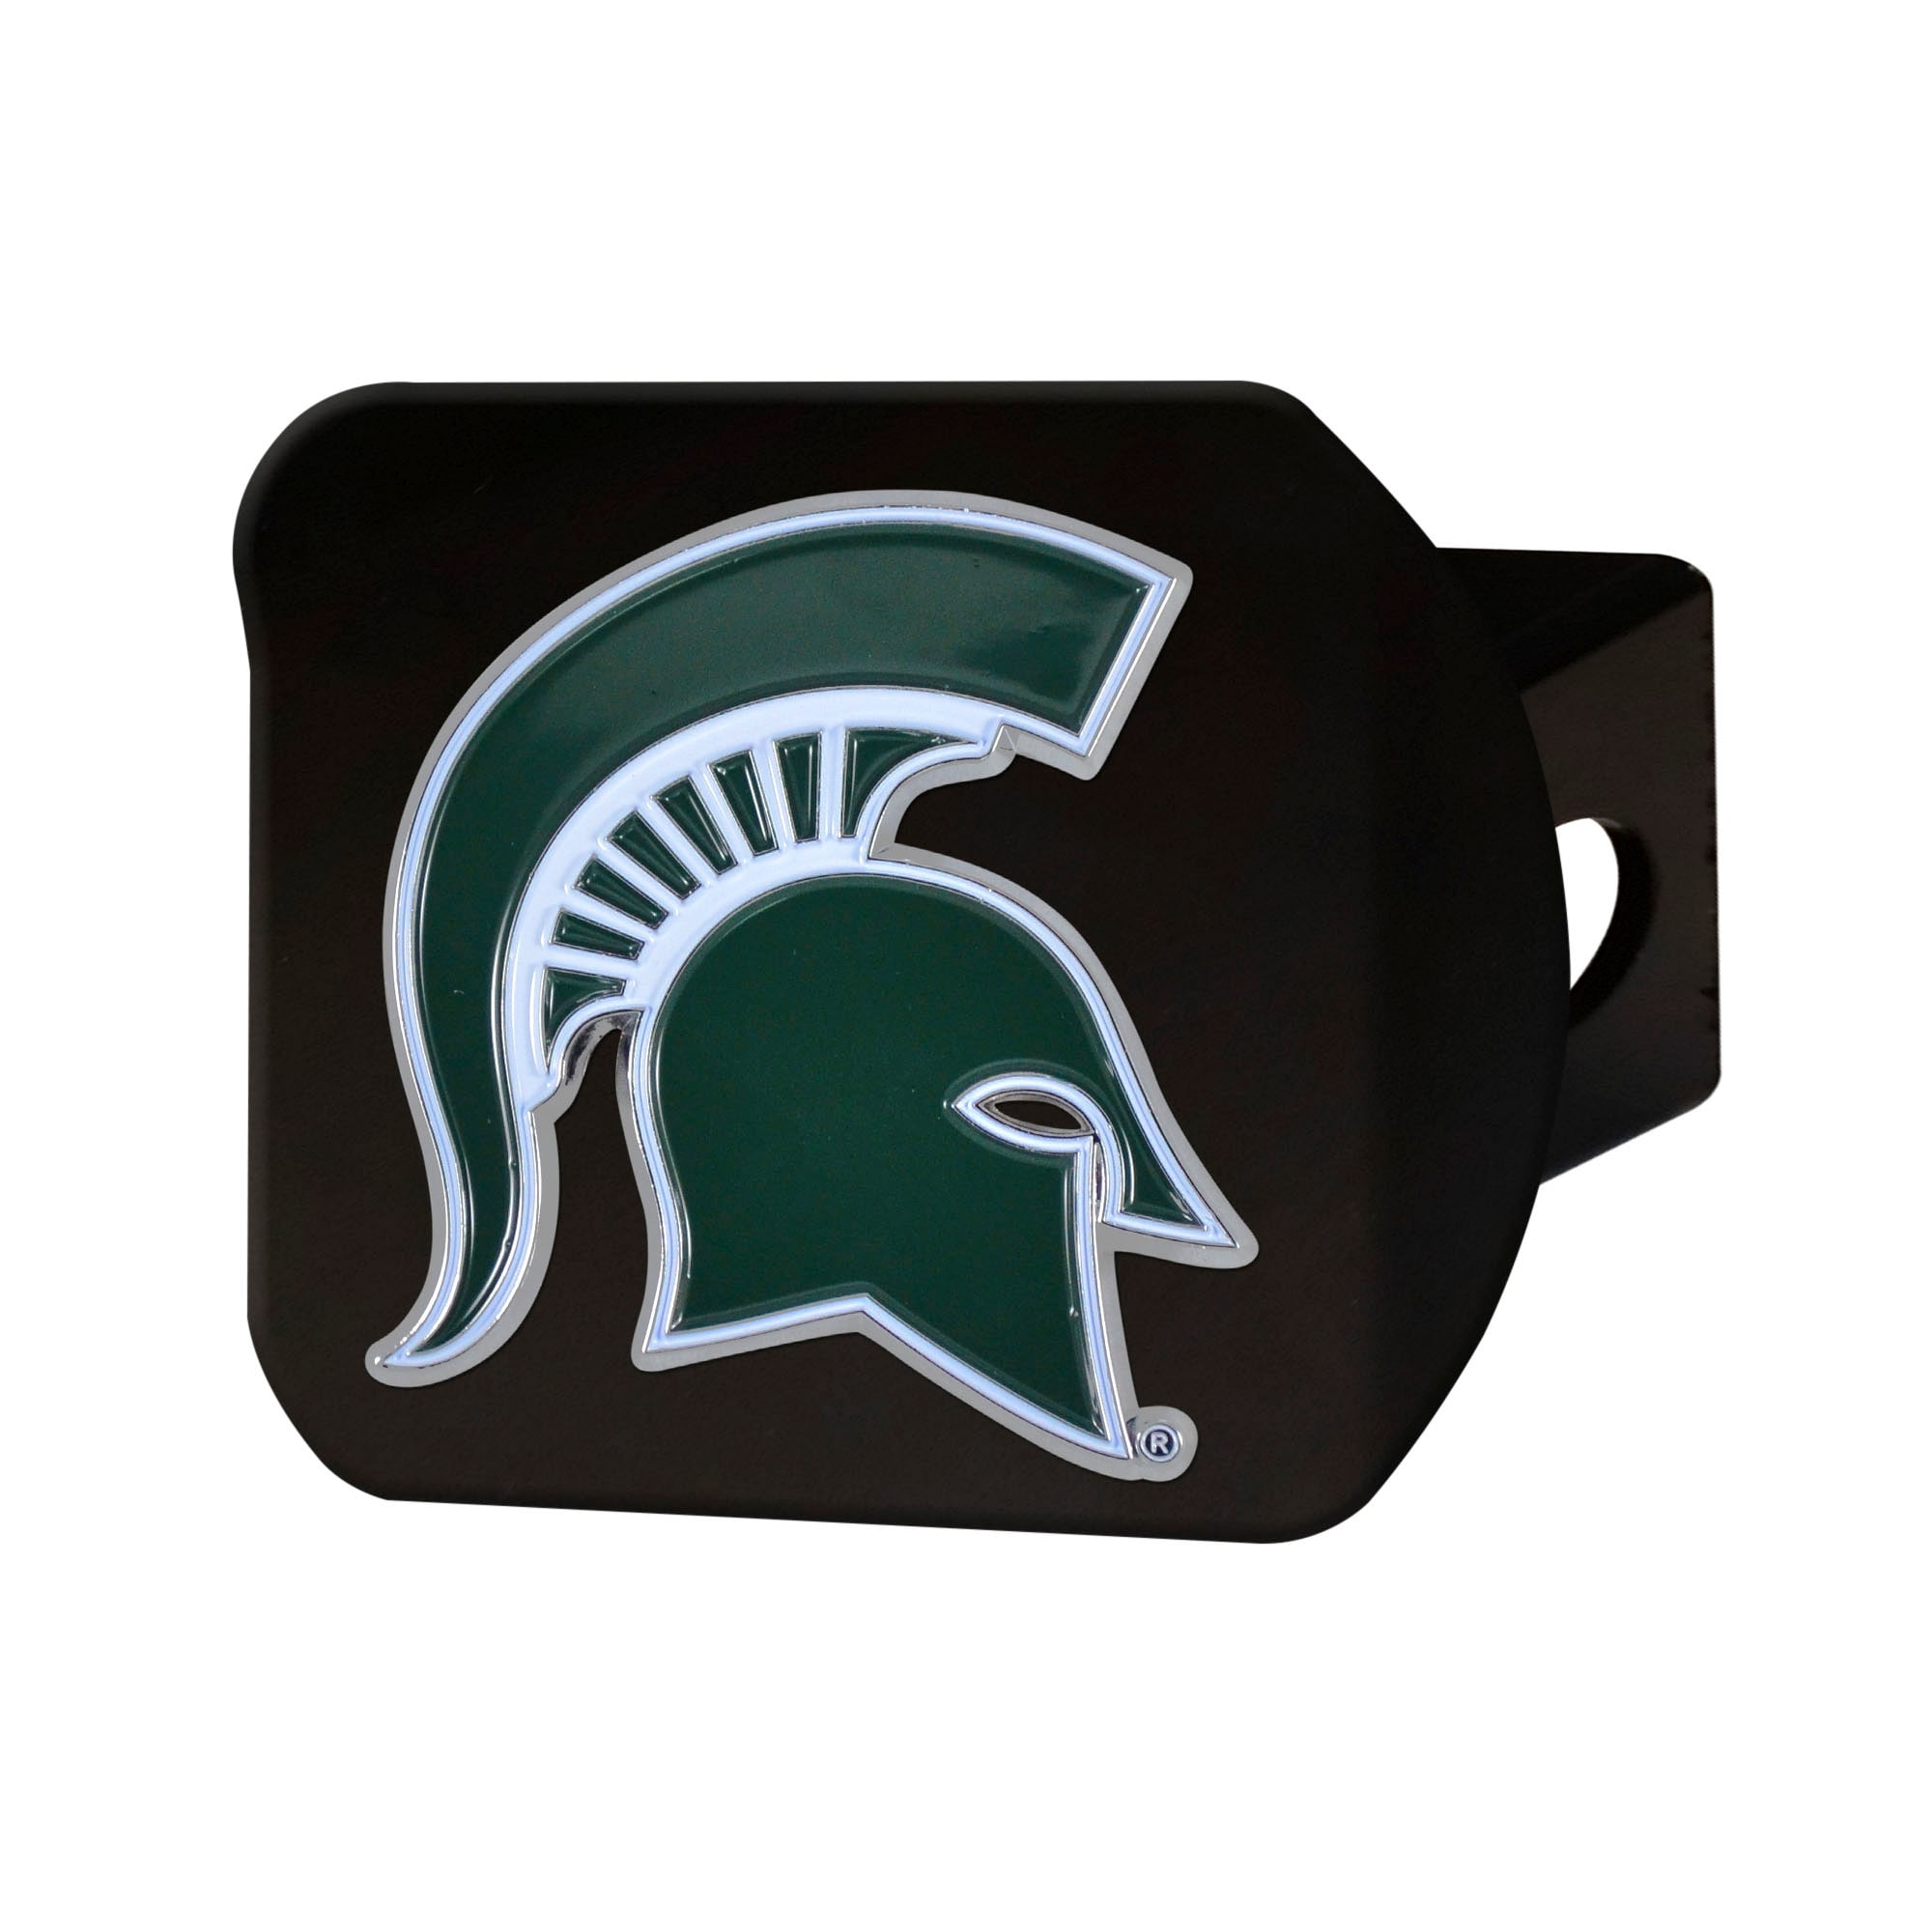 e60e810513a8e Shop Michigan State University Black Hitch Cover with Color - Free Shipping  On Orders Over  45 - Overstock - 25618346